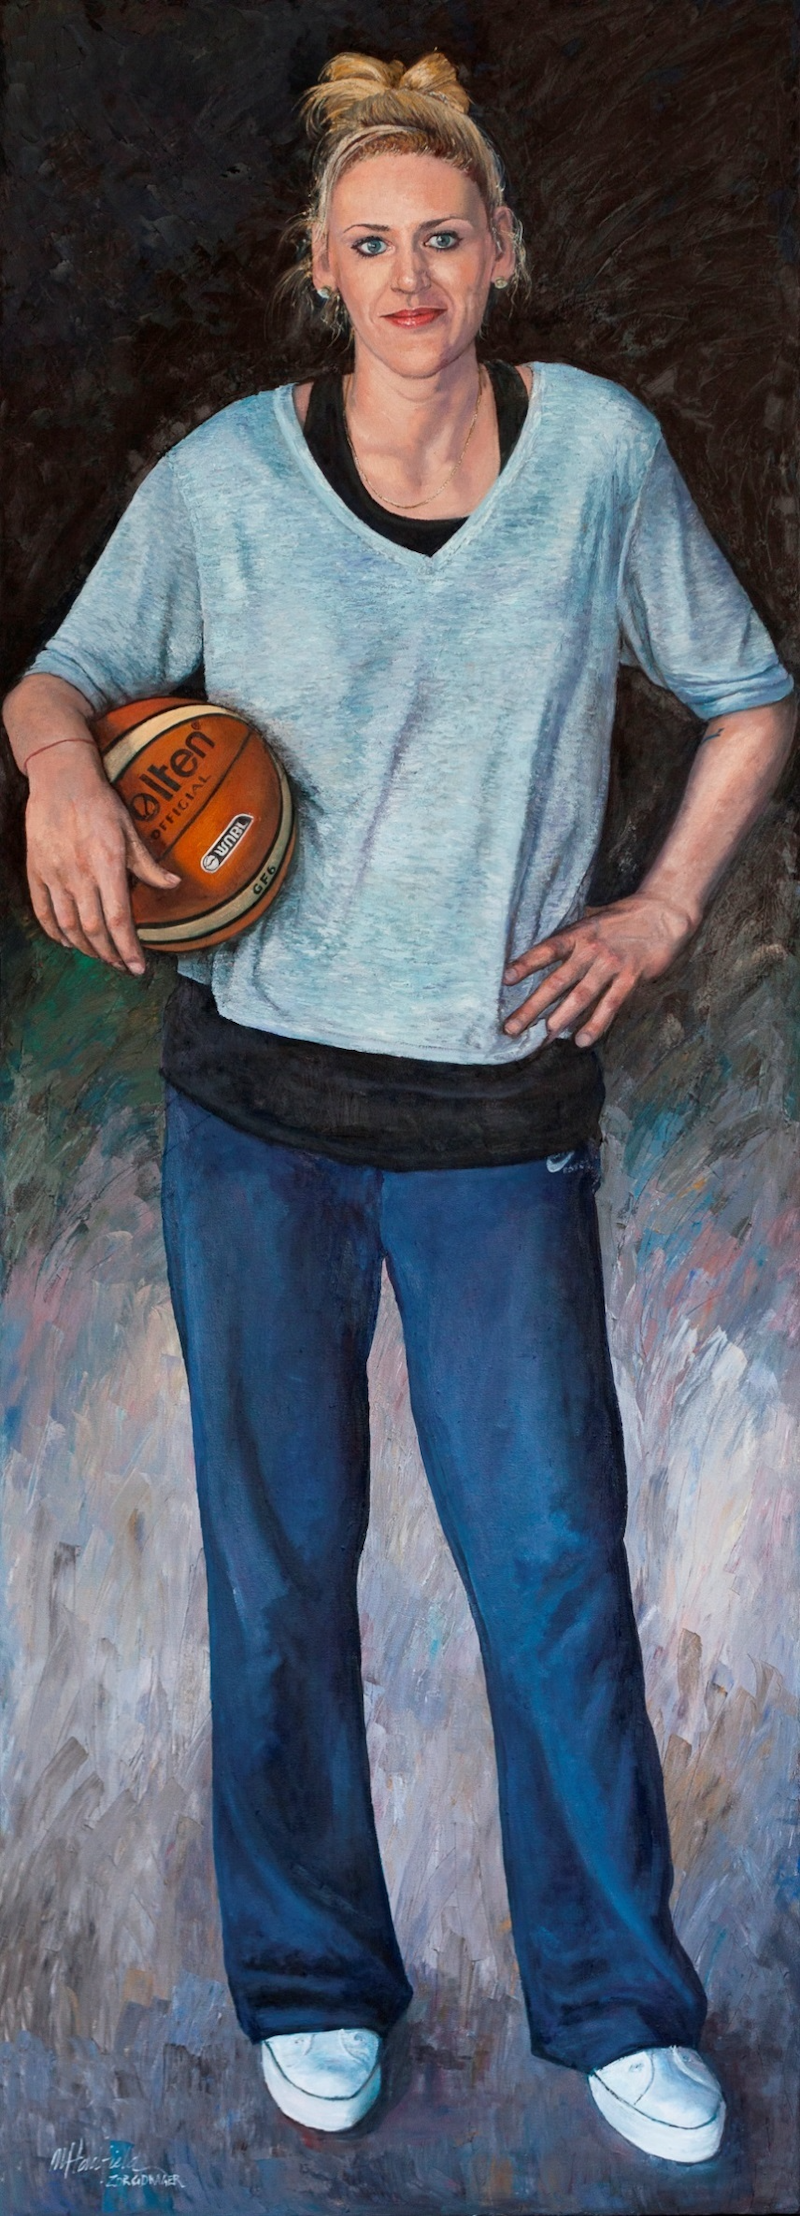 (CreativeWork) SIMPLY THE BEST-LAUREN JACKSON by Margaret HADFIELD. oil-painting. Shop online at Bluethumb.